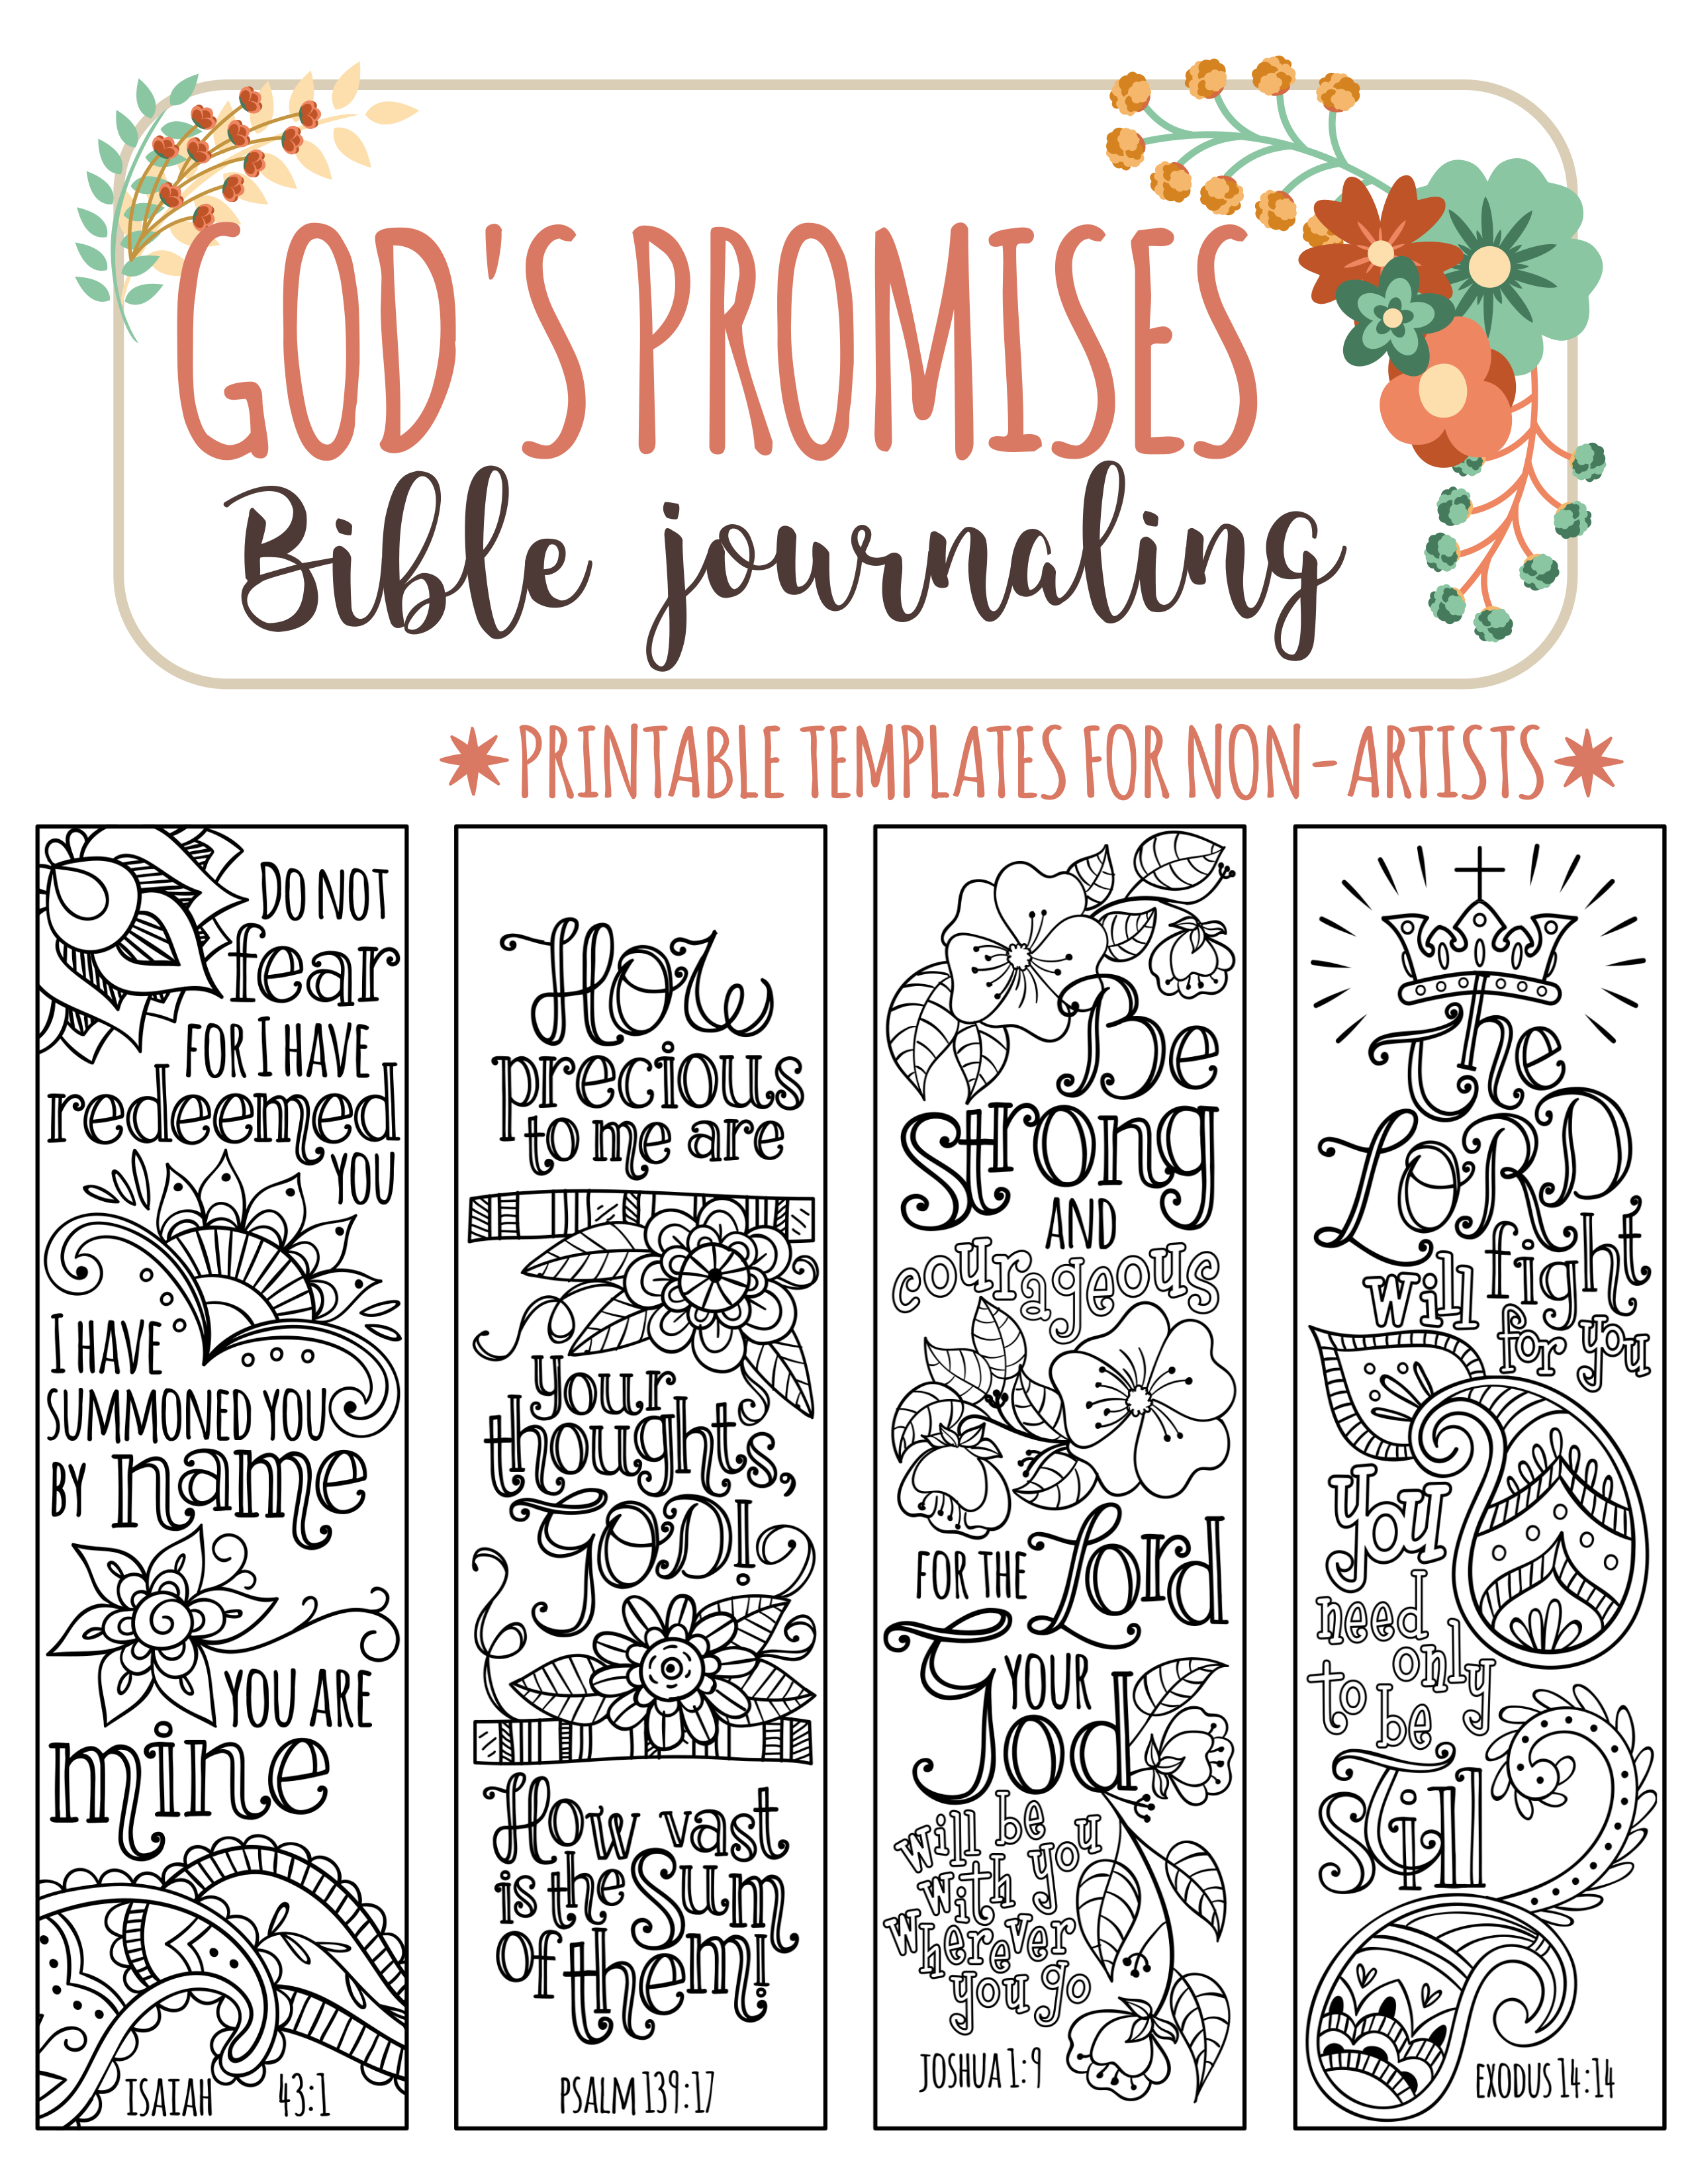 God's Promises - Bible Journaling Printable Templates, Illustrated - Free Printable Religious Easter Bookmarks